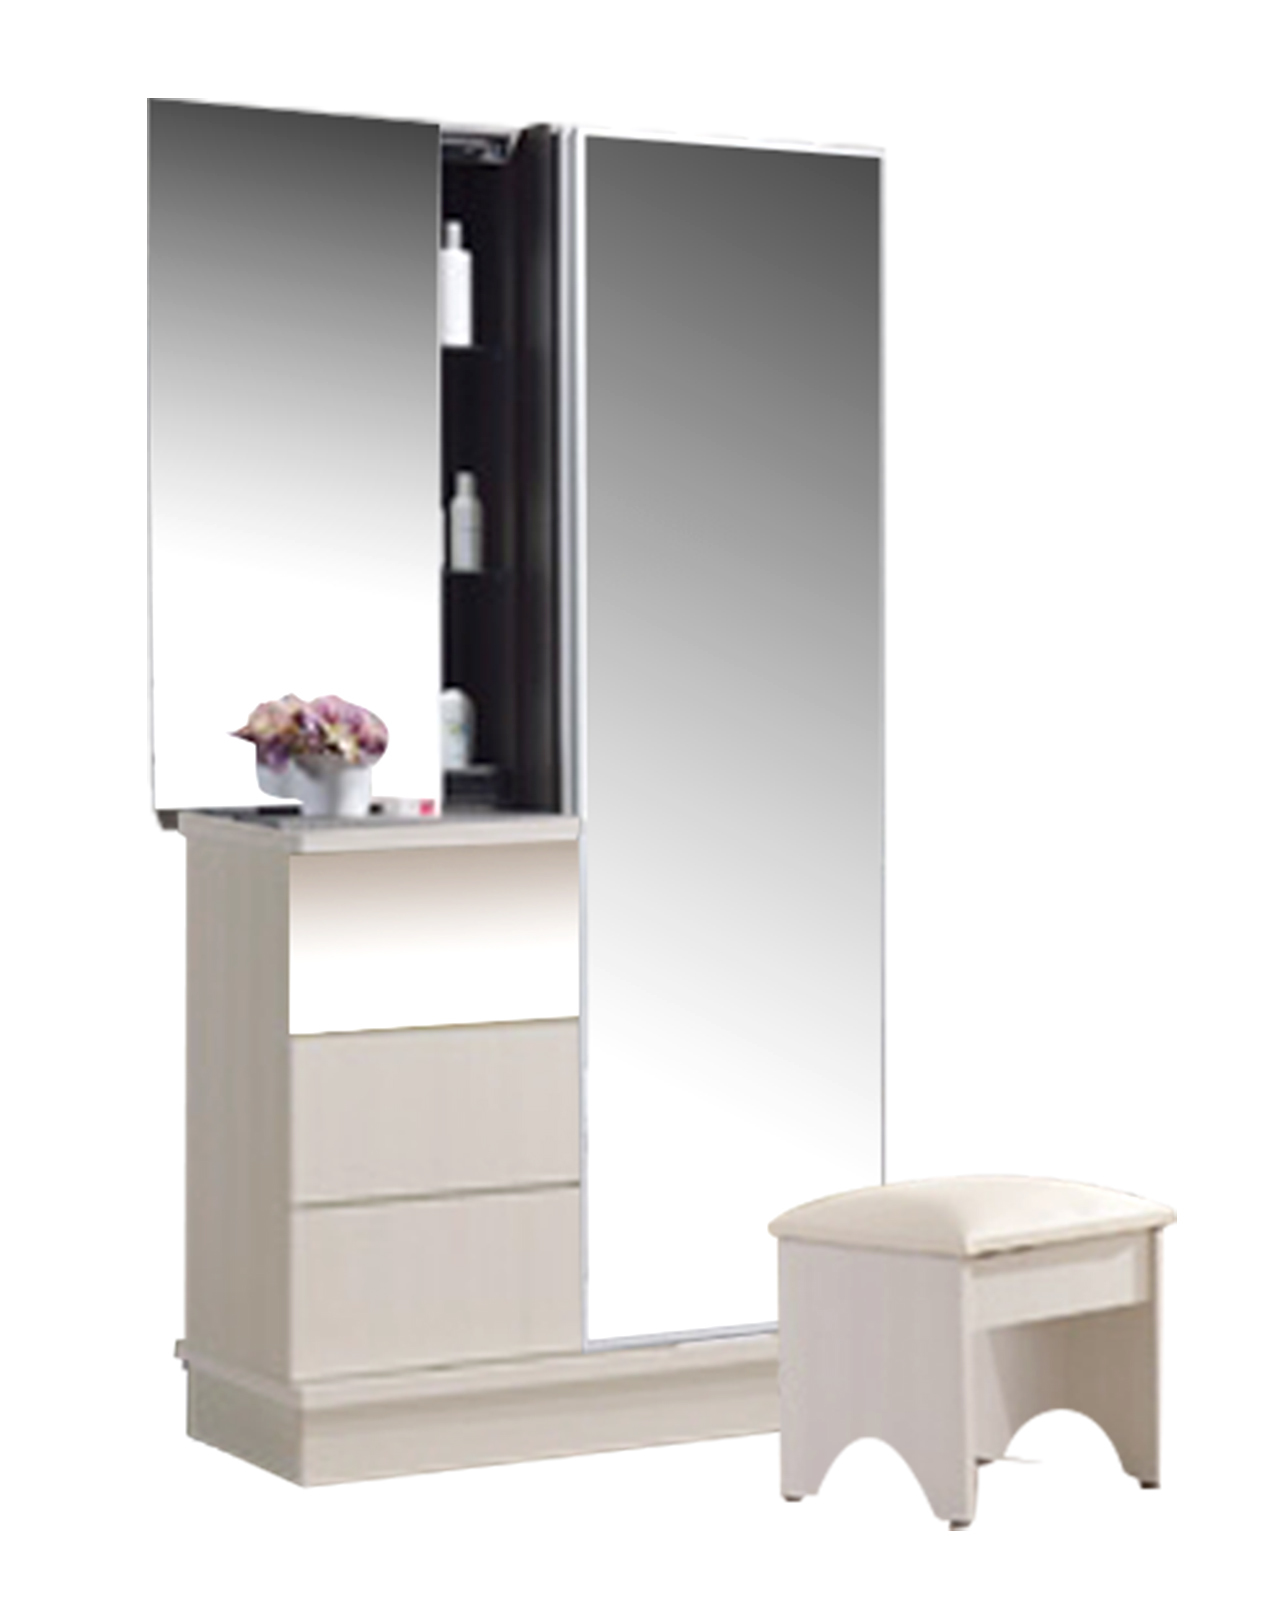 dressing table + stool 7718.jpg